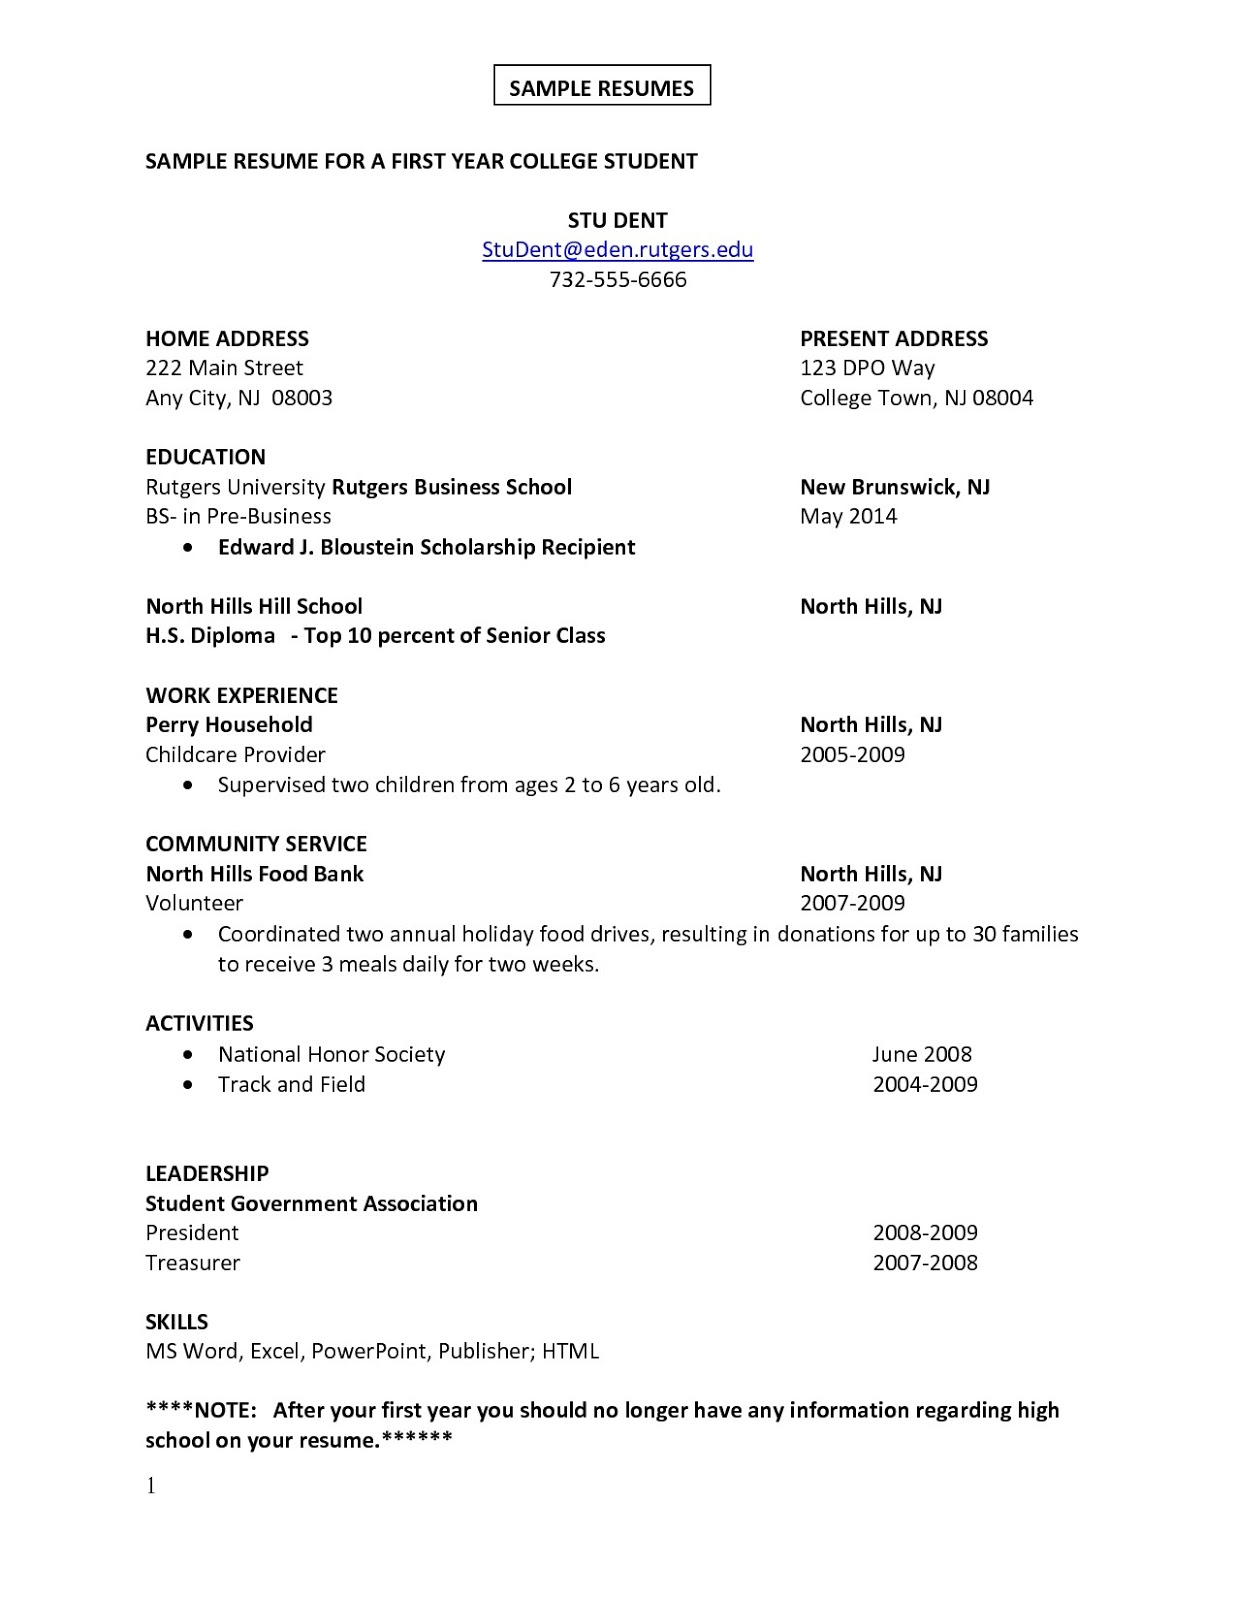 free resume templates sample formats bitraceco pertaining to smart resume wizard wizard resume resume wizard word resume builder free yahoo - Yahoo Resume Builder